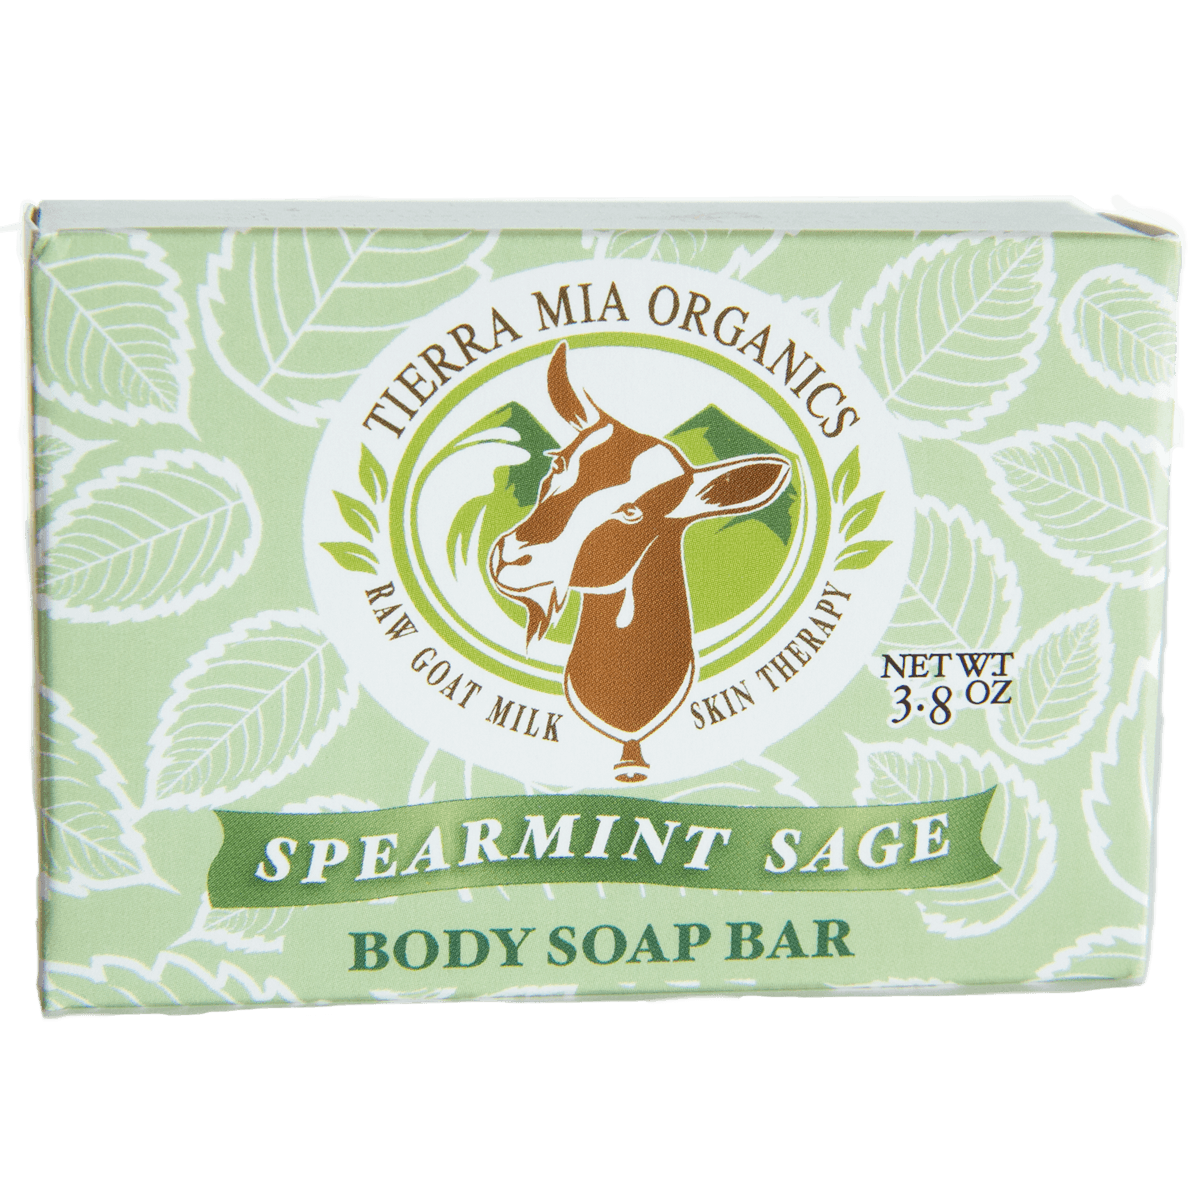 Spearmint_Sage_Body_Soap_Bar_Goat_Milk_Soap